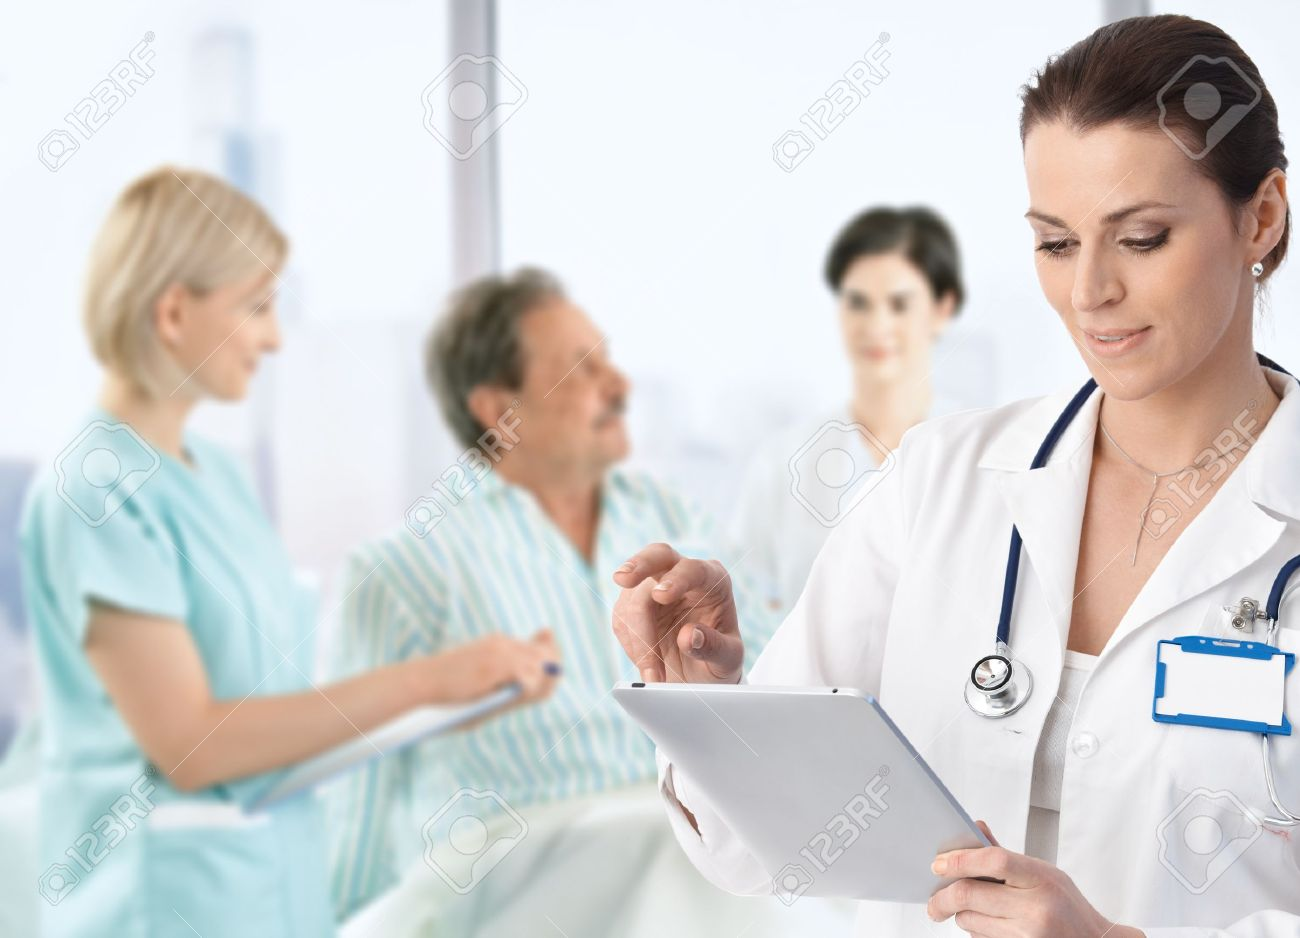 Doctor recording information to electronic tablet at patients bed, team working in background.� Stock Photo - 9611556